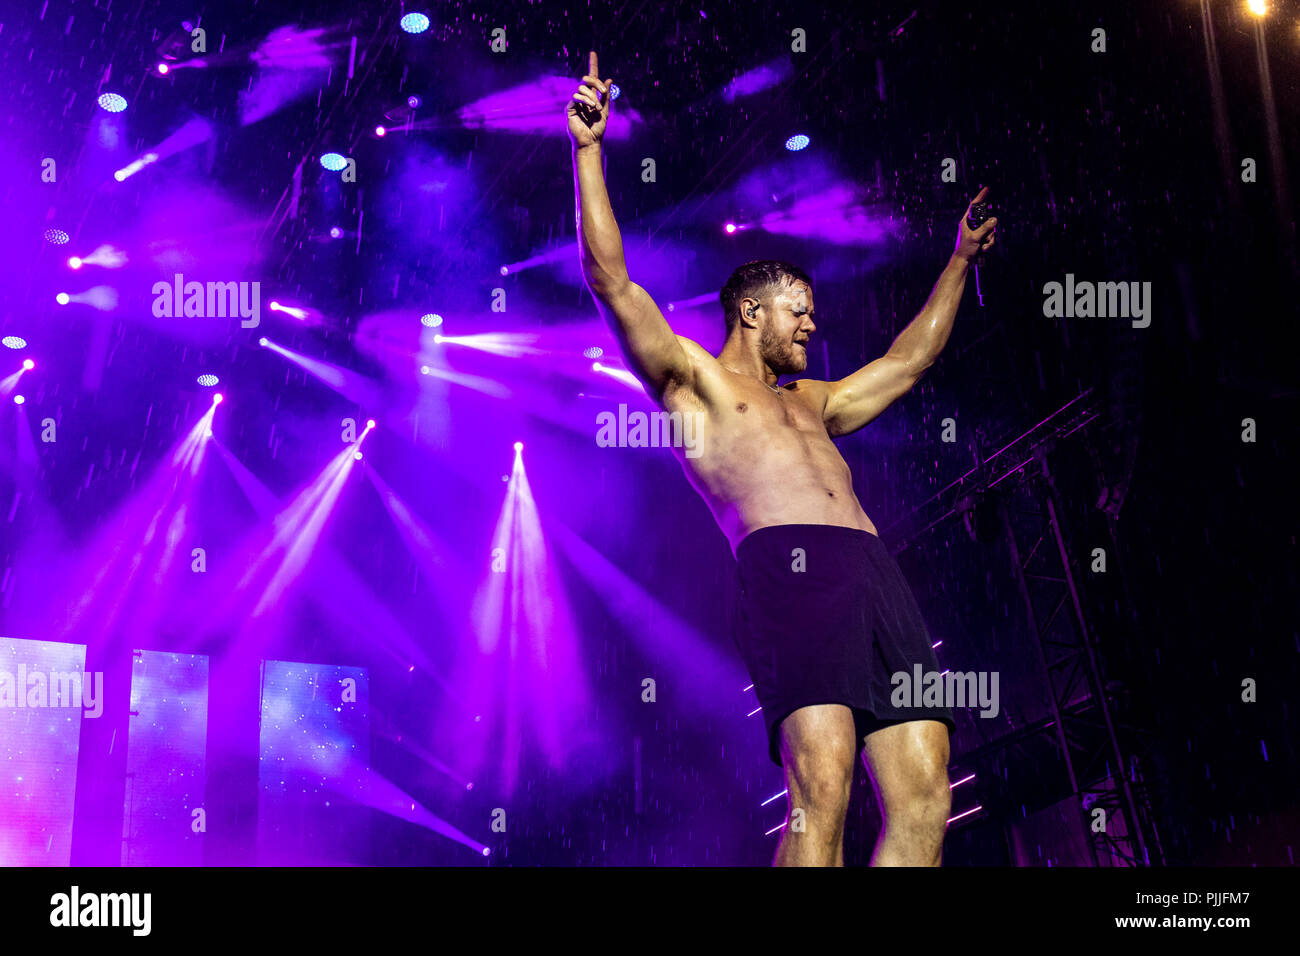 Milan, Italy, 6th September 2018: Imagine Dragons perform on stage at Milano Rocks in Italy, at Area Experience in Milan, for their Evolve World Tour 2018 - Valeria Portinari/Alamy Live News - Stock Image